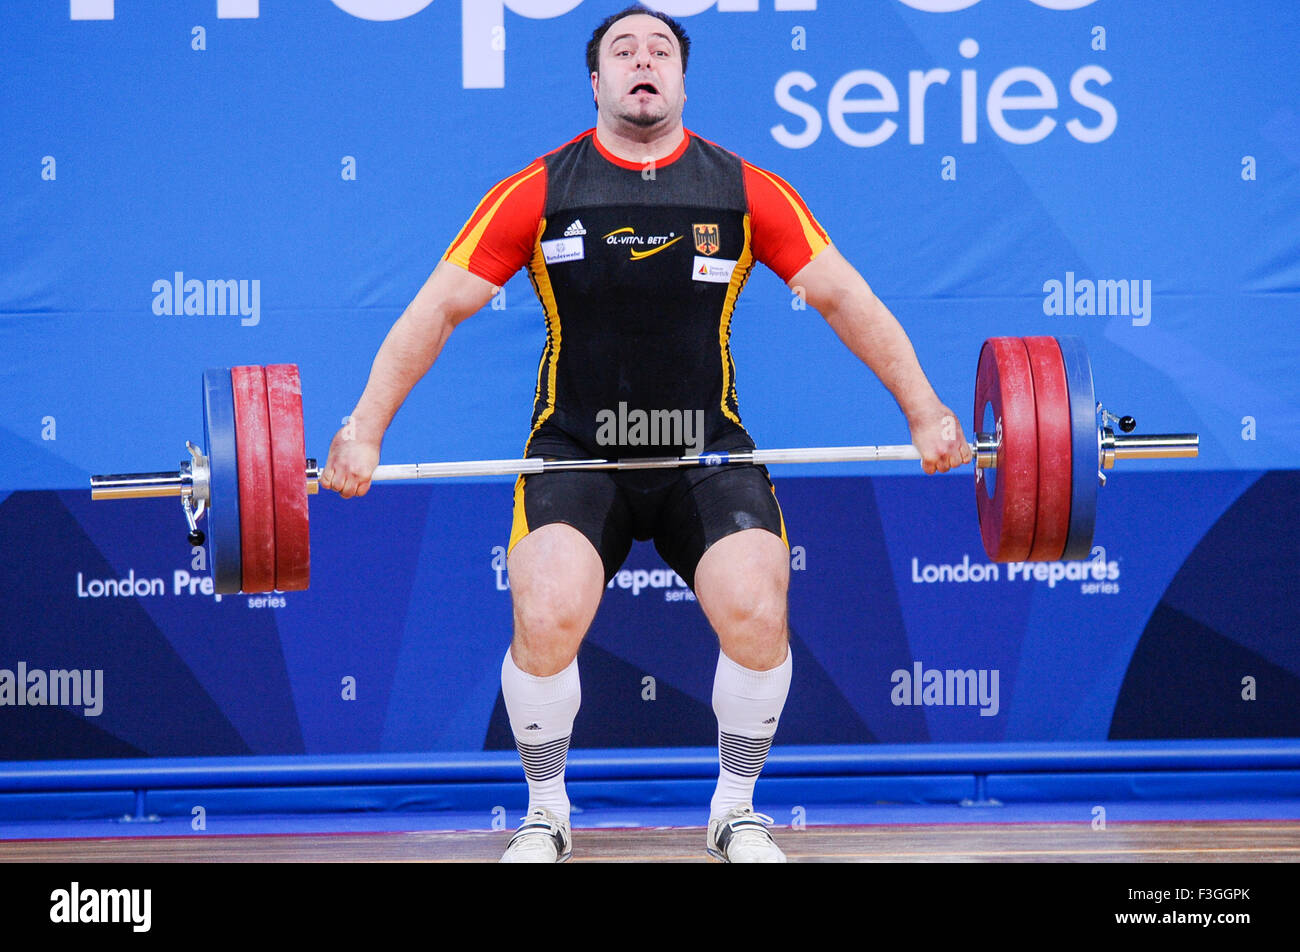 Almir  VELAGIC (FRA) in the snatch, The London Prepares Weightlifting Olympic Test Event, ExCel Arena, London, England - Stock Image